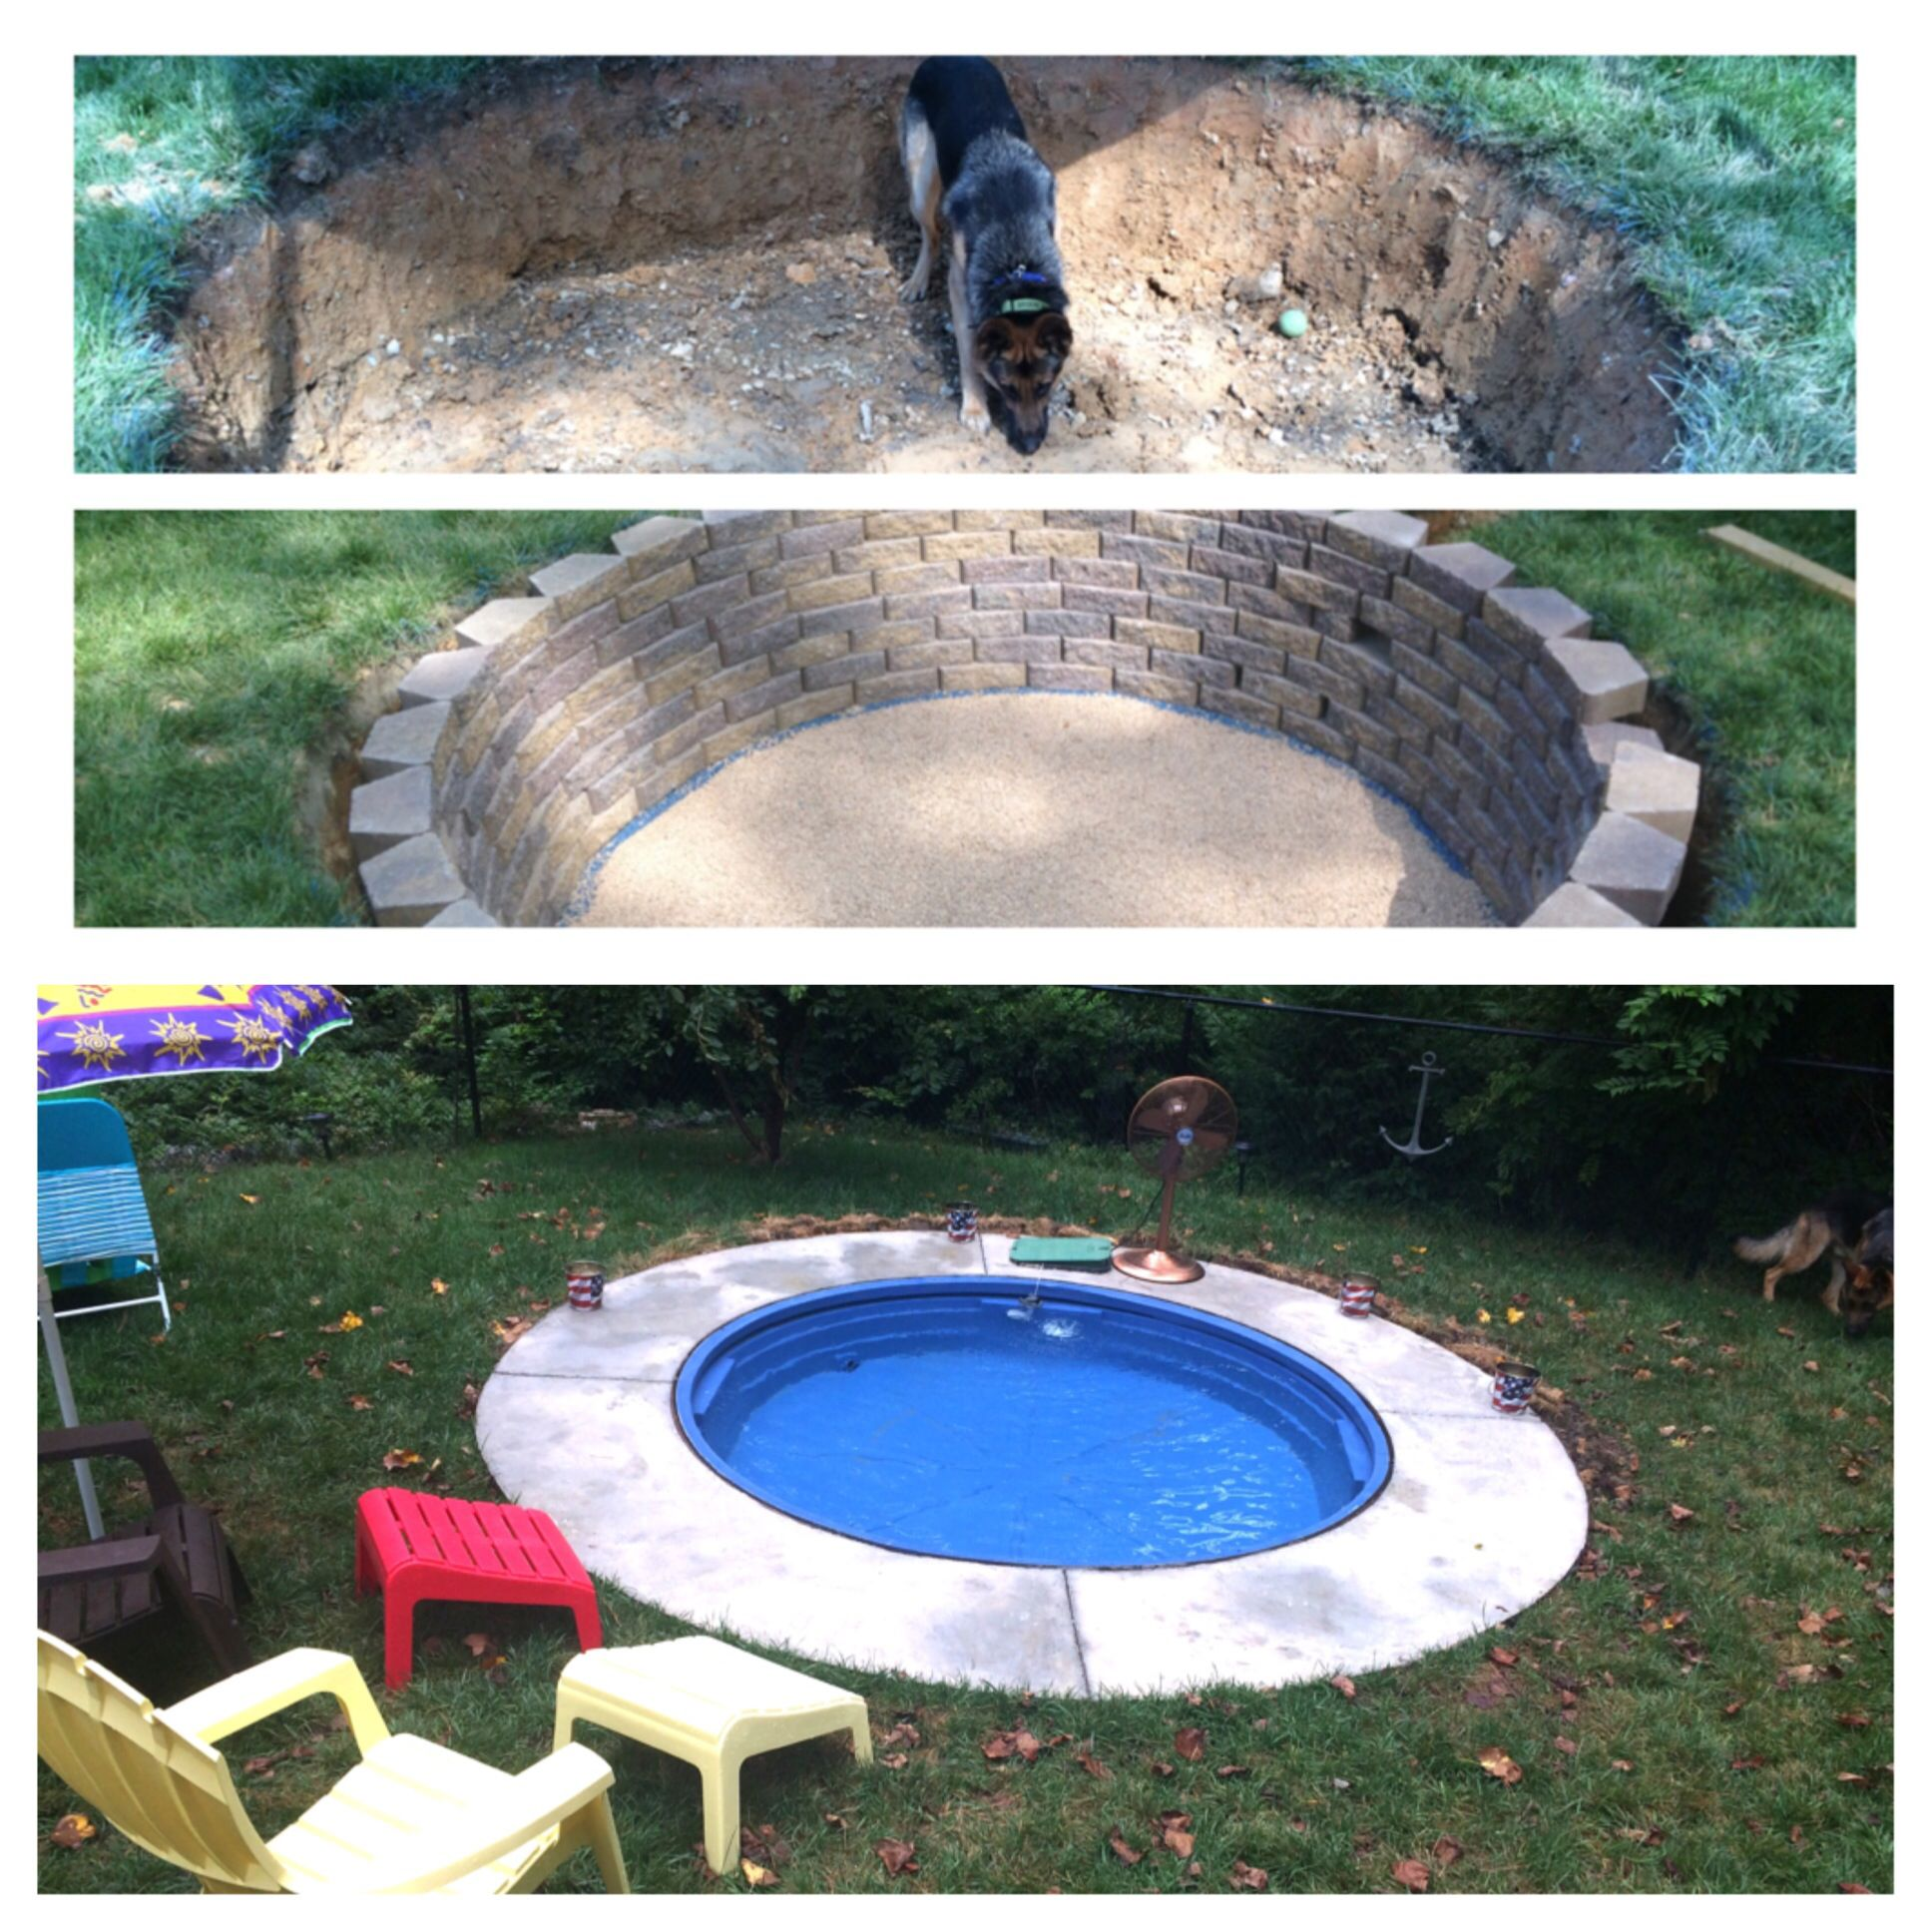 Mini pool build using a stock tank from tractor supply for Garden mini pool